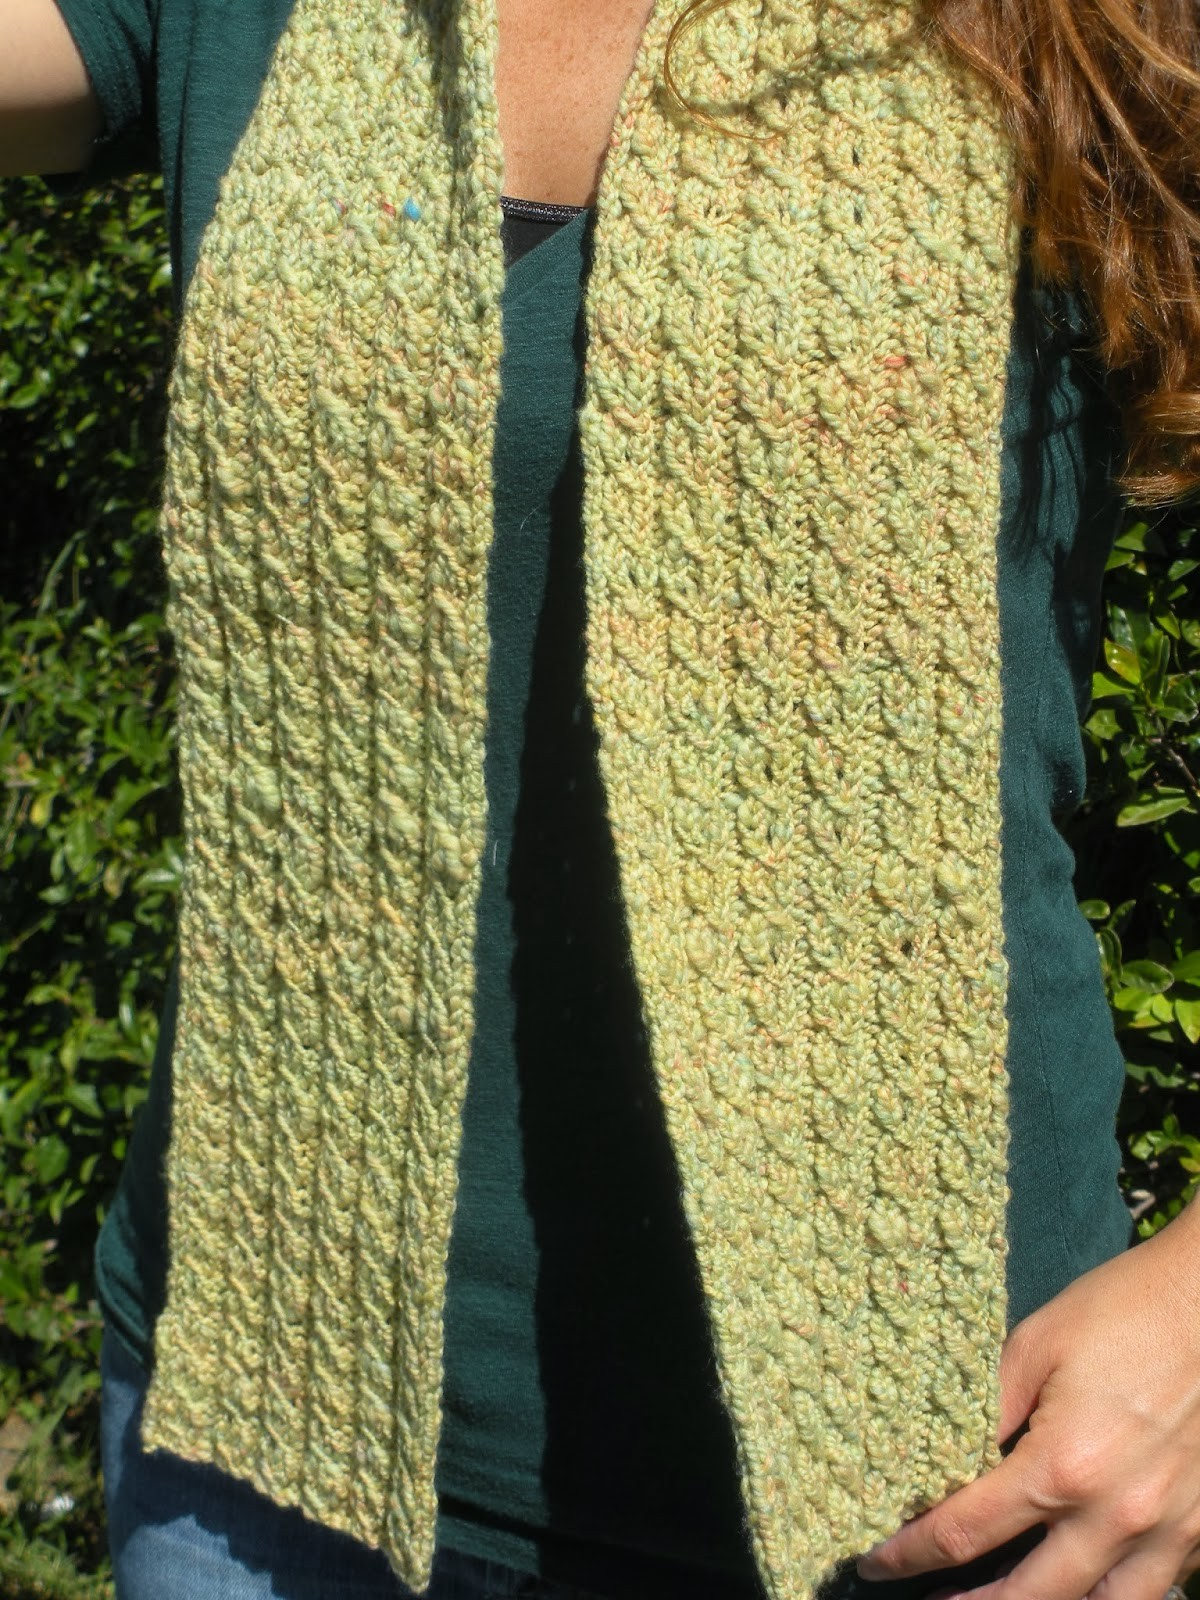 Cable Knit Scarf Pattern : Cable Knit Scarf Pattern A Knitting Blog